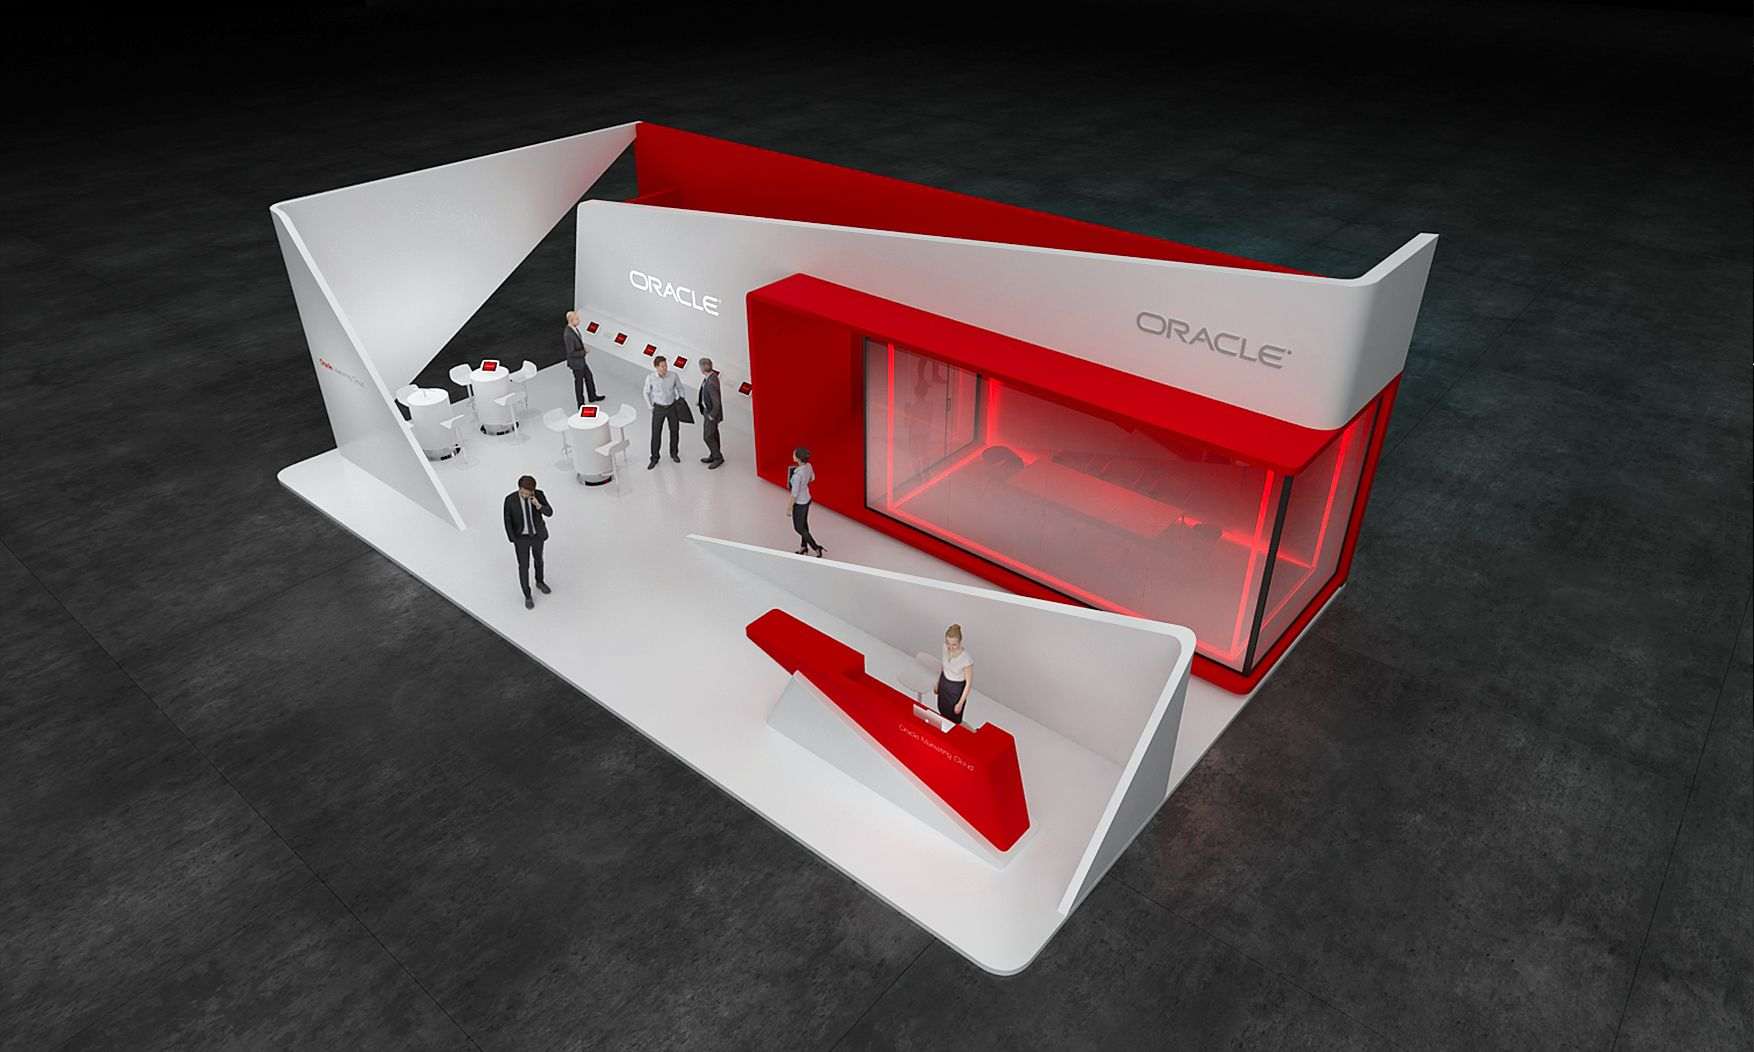 Exhibition Stand Designers Amp Builders : Oracle exhibition stand design idea gm stand design